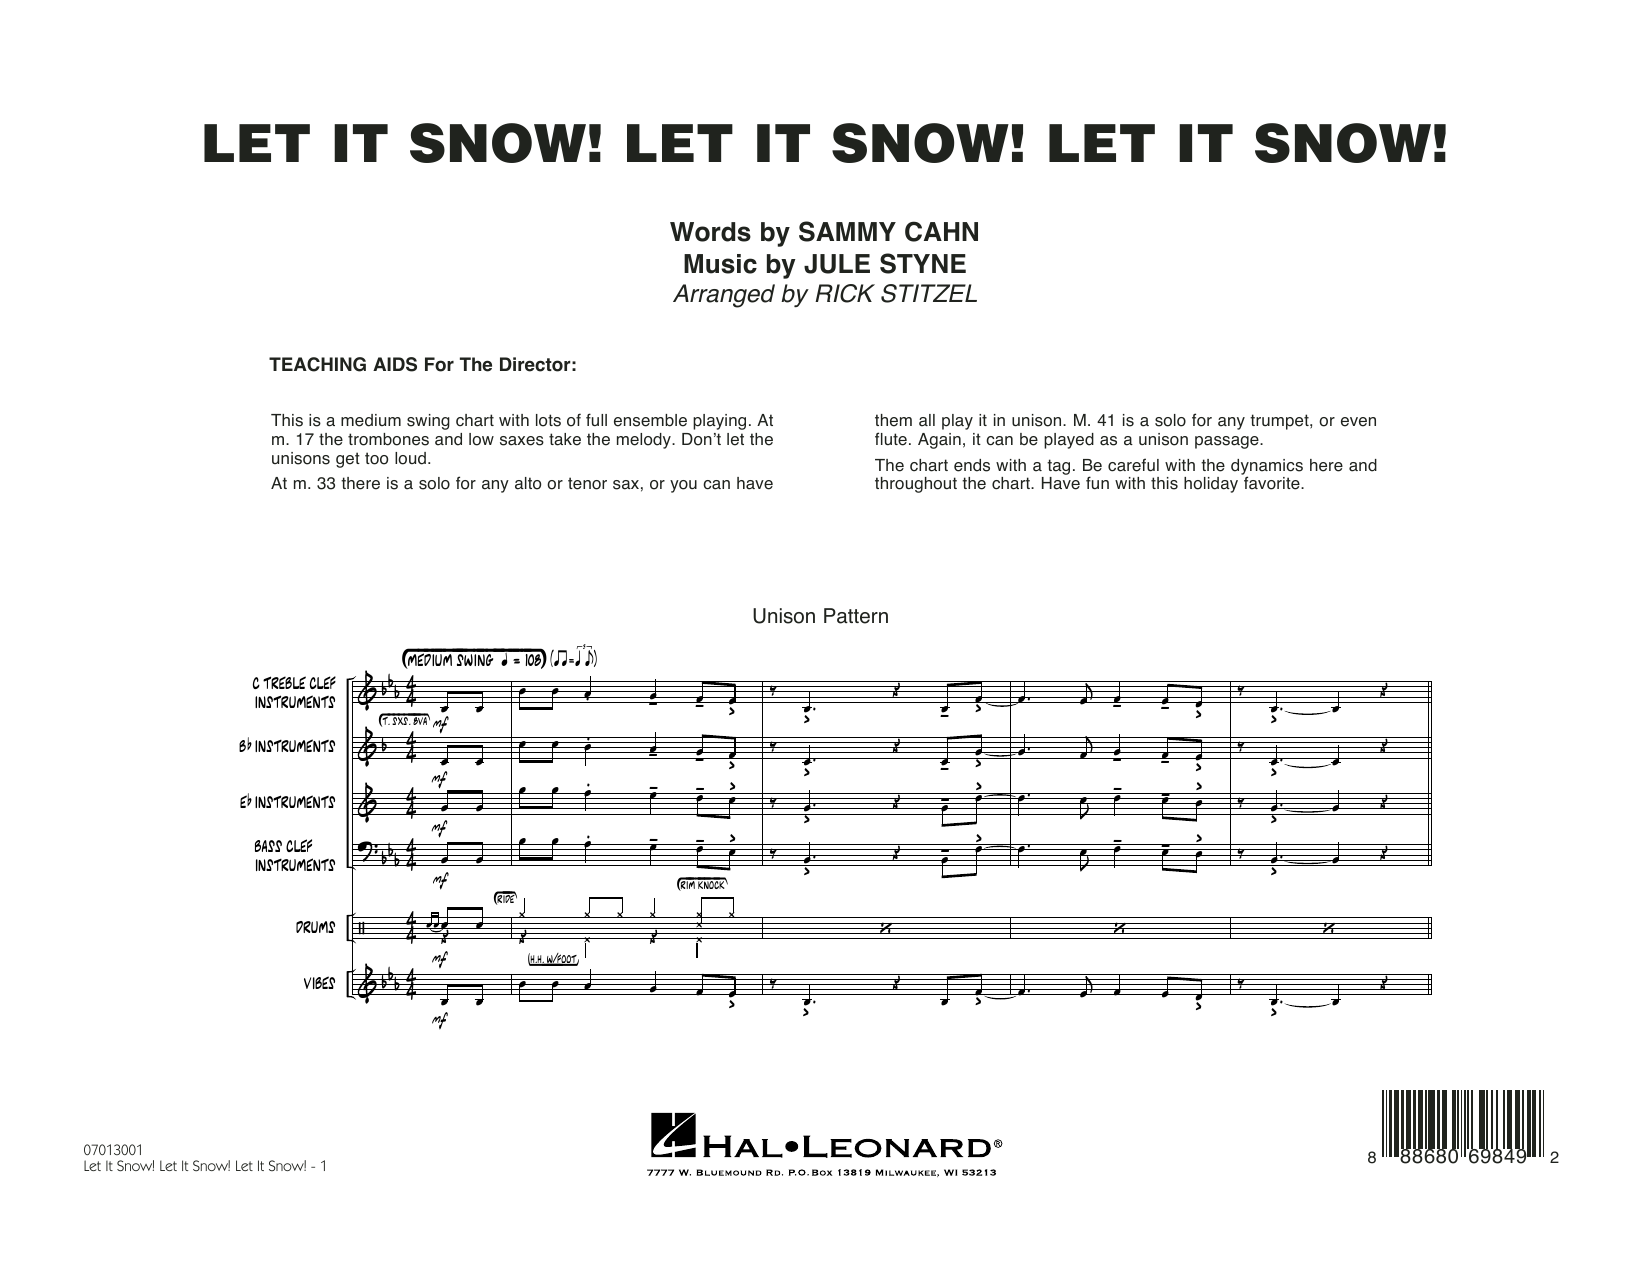 Let It Snow! Let It Snow! Let It Snow! (COMPLETE) sheet music for jazz band by Rick Stitzel, Jule Styne and Sammy Cahn. Score Image Preview.